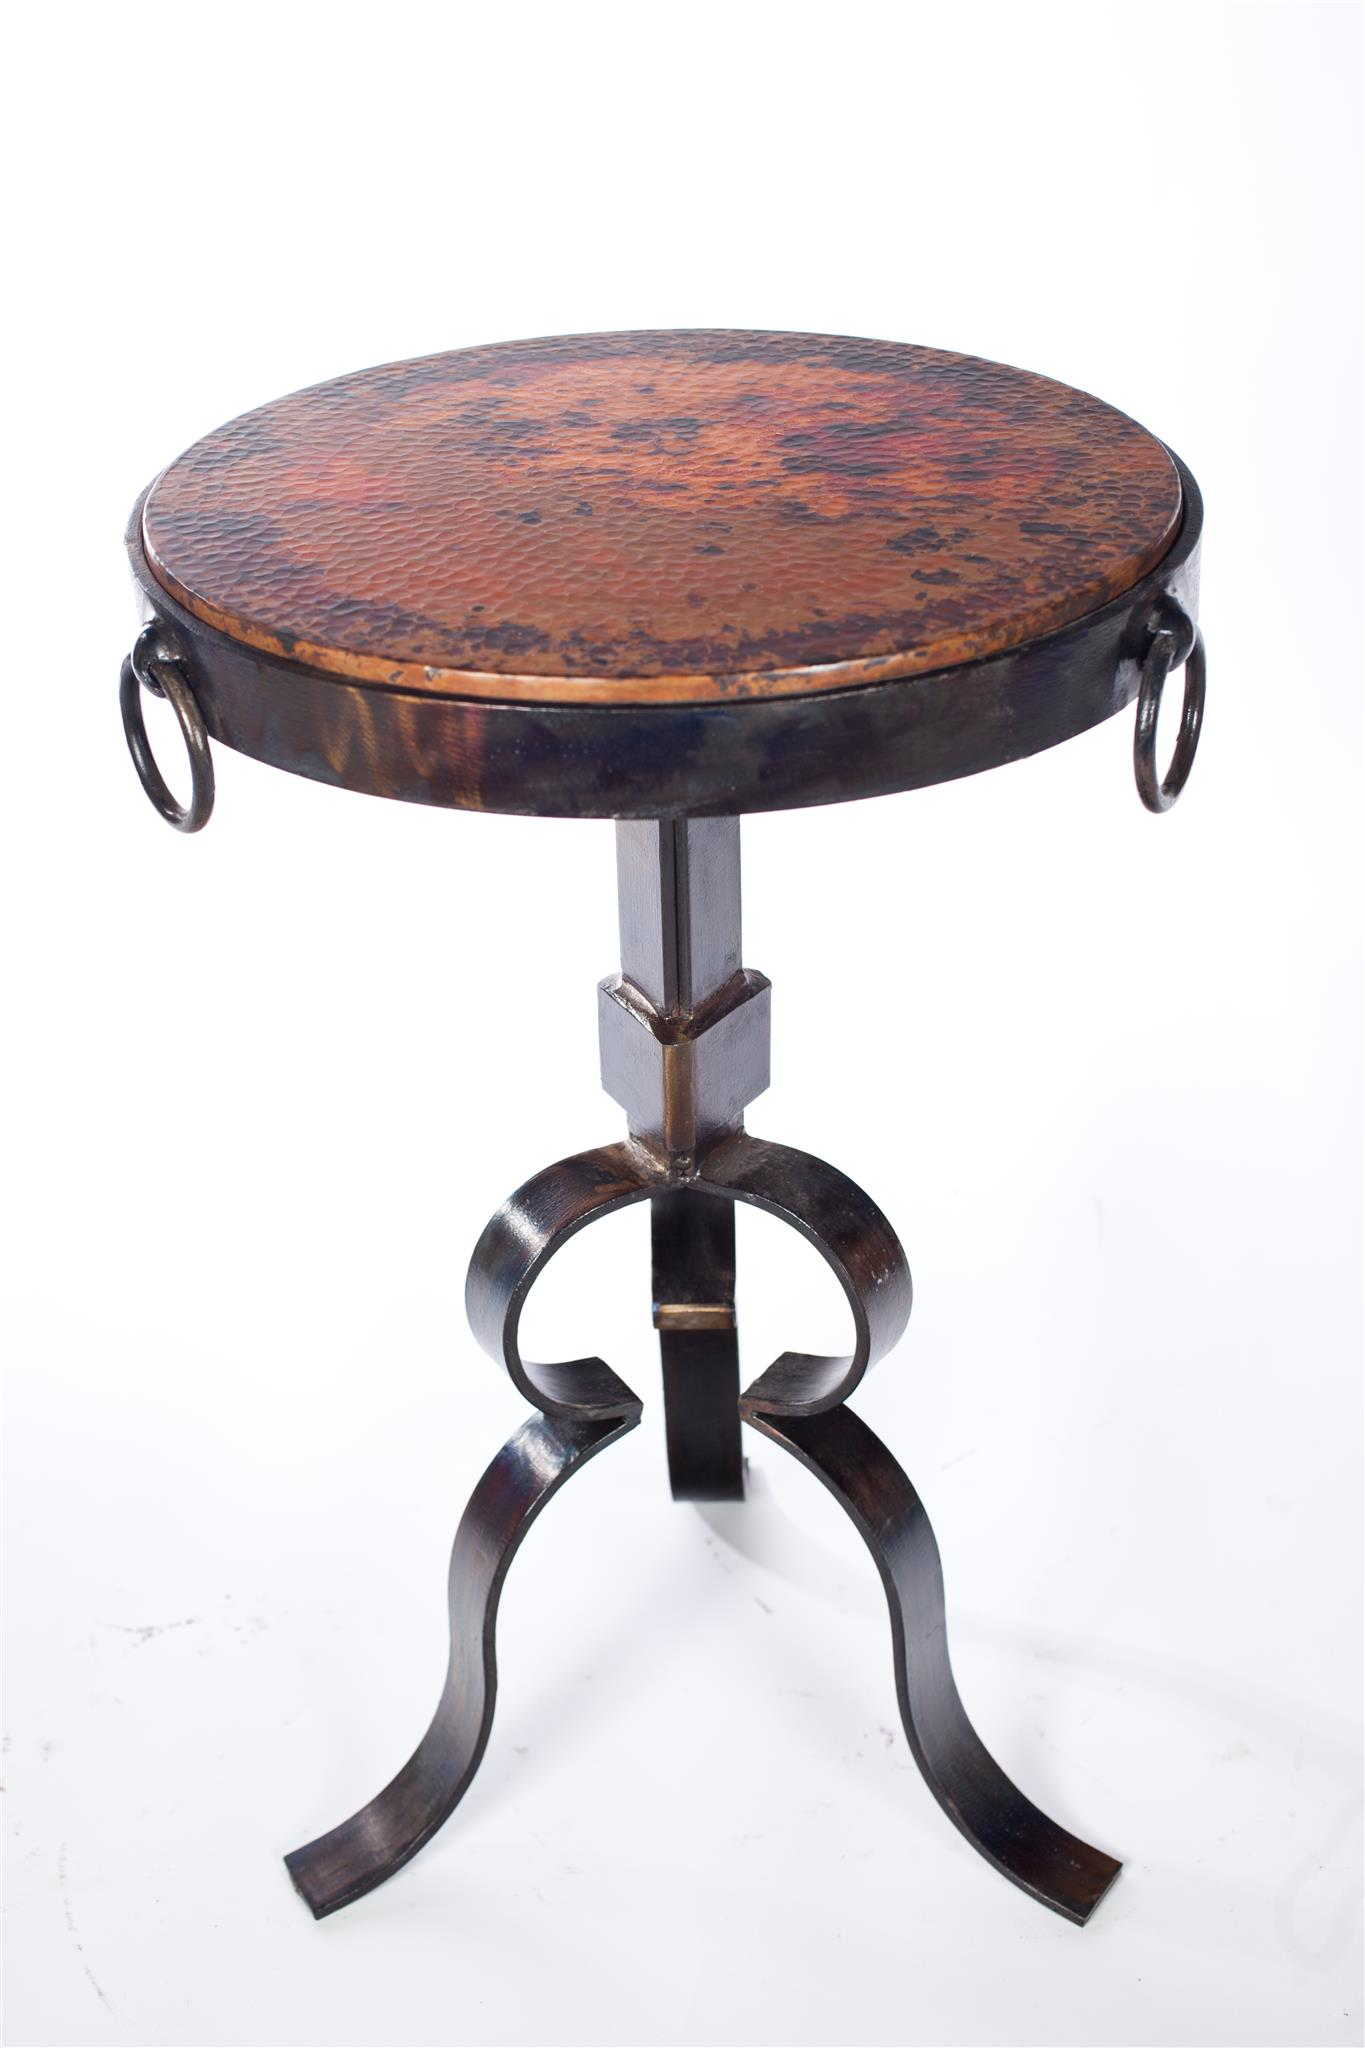 Round Iron Accent Table With Hammered Copper Top Boulevard Urban - Copper top accent table